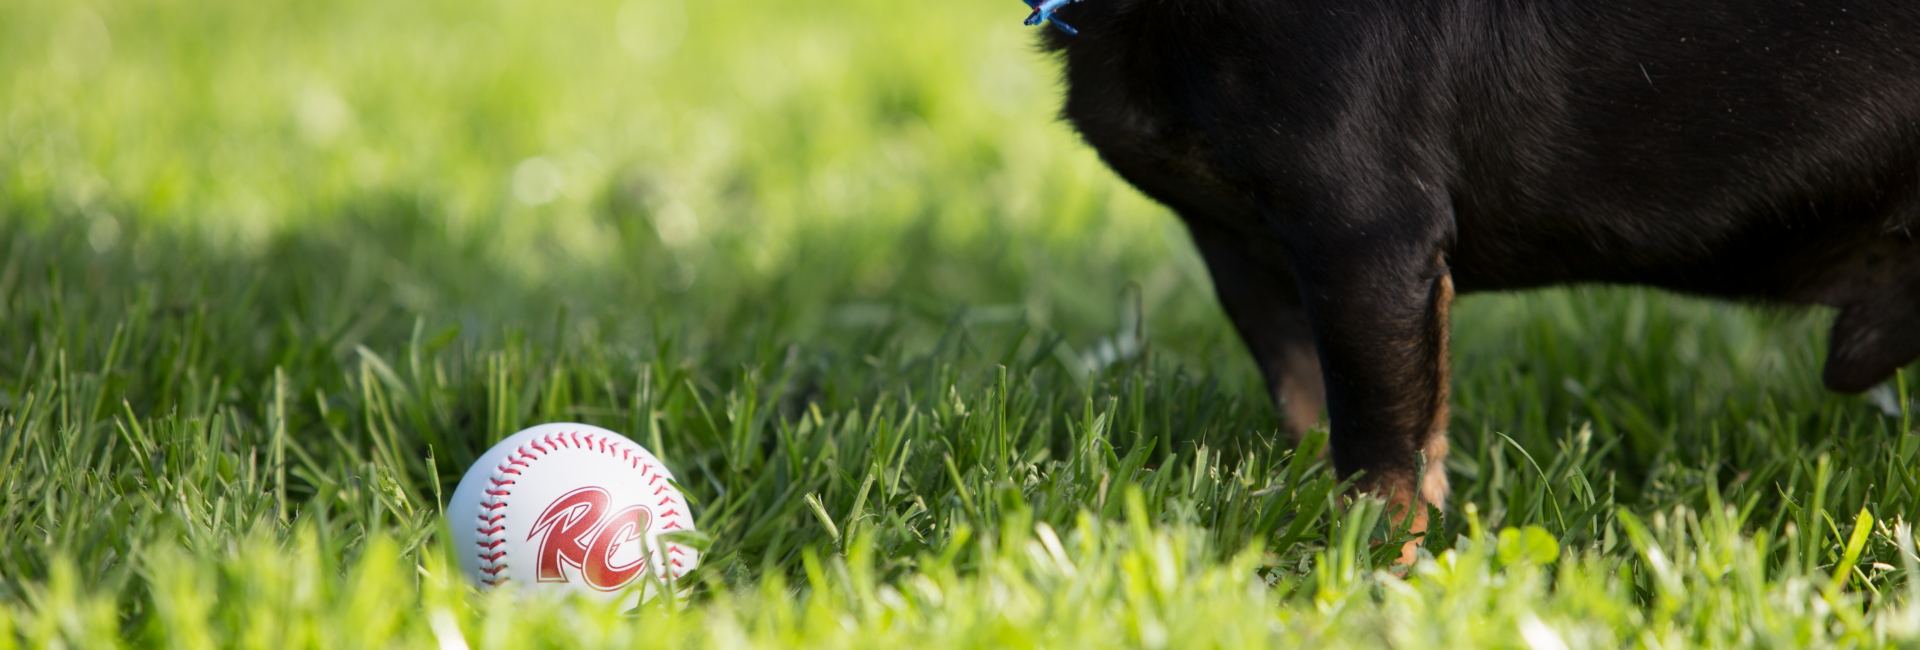 Dog with Rivercats ball